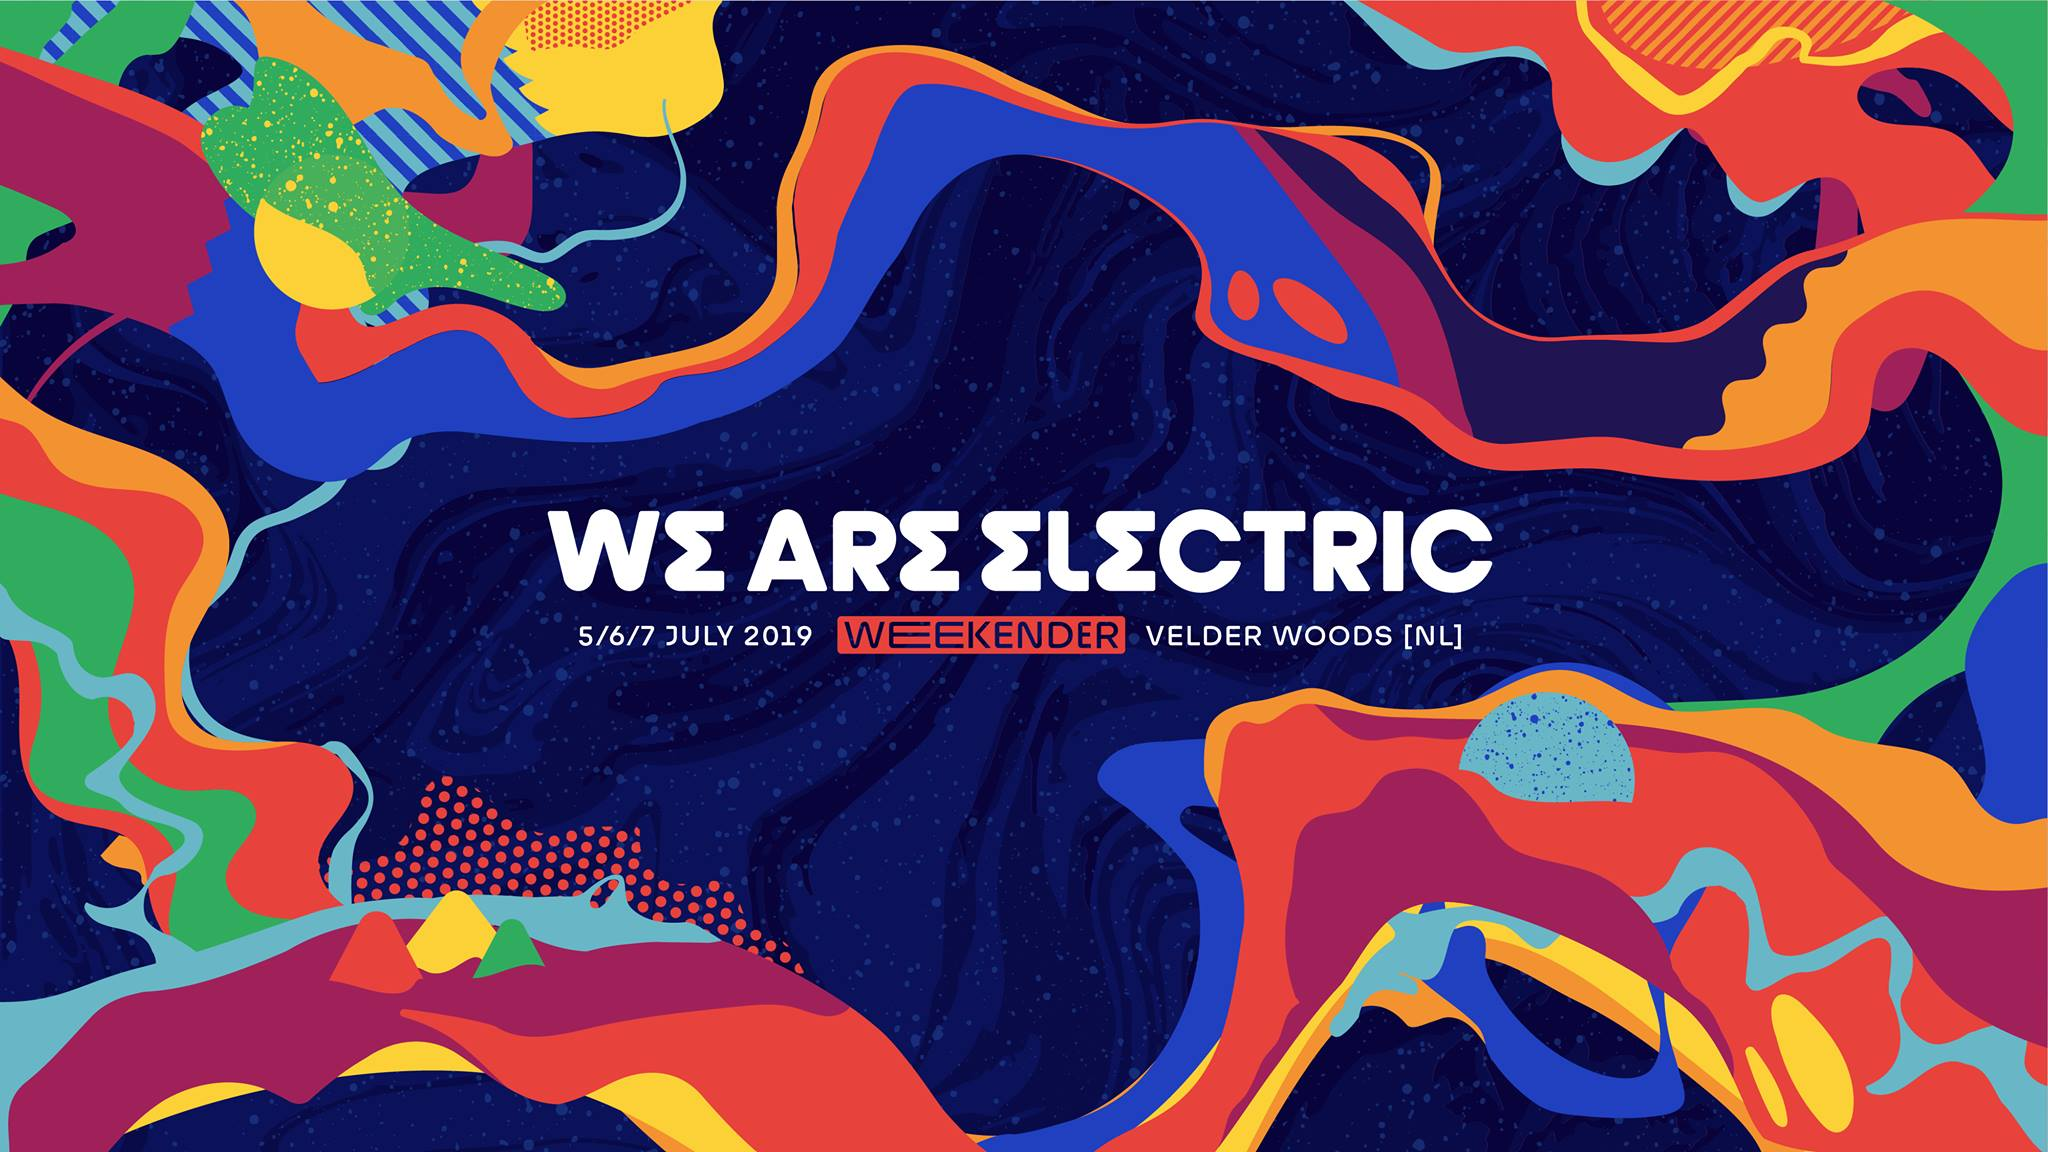 WE ARE ELECTRIC WEEKENDER 2019